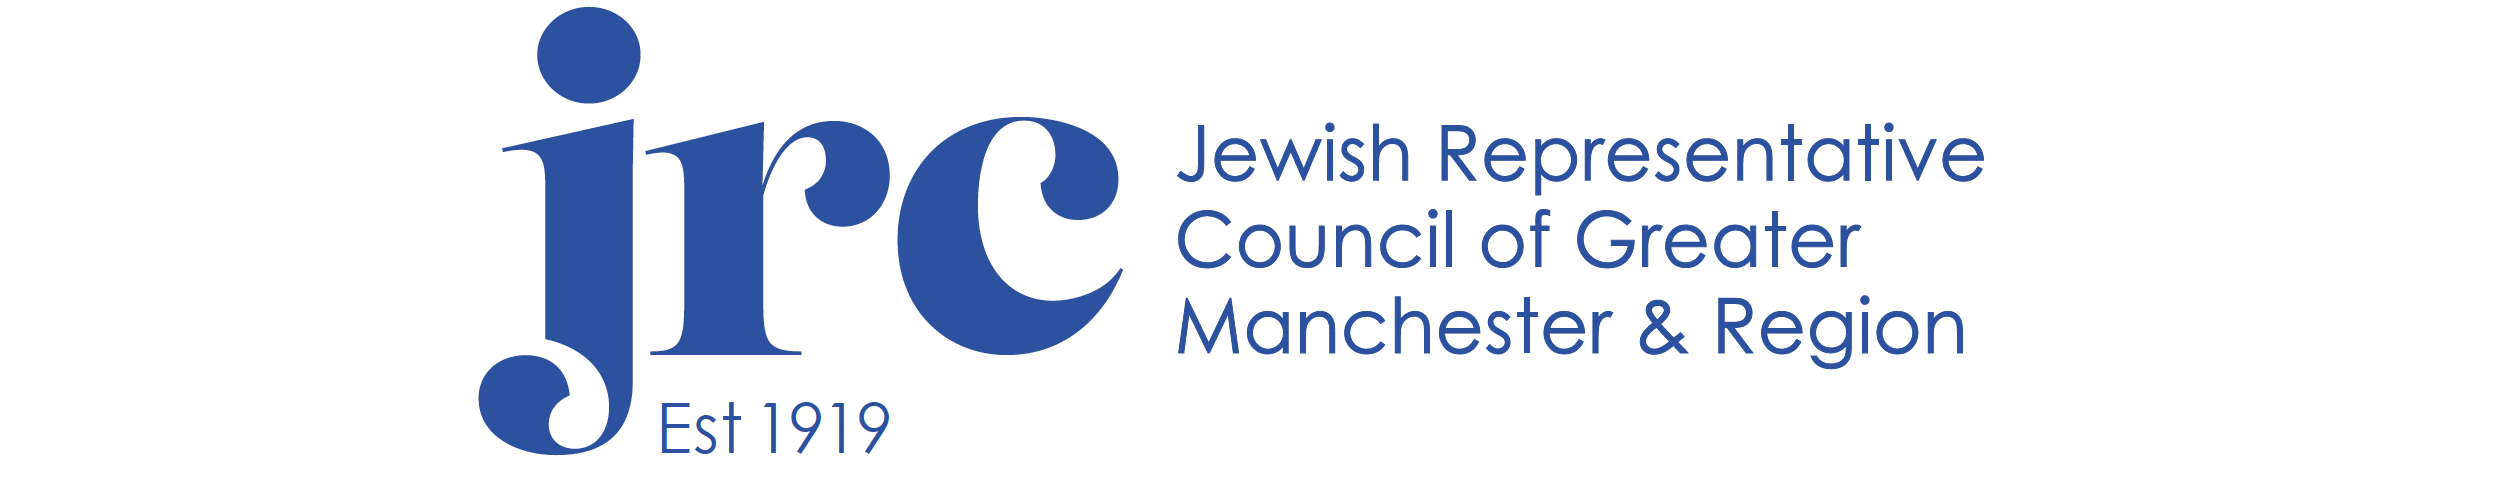 Jewish Representative Council of Greater Manchester and Region